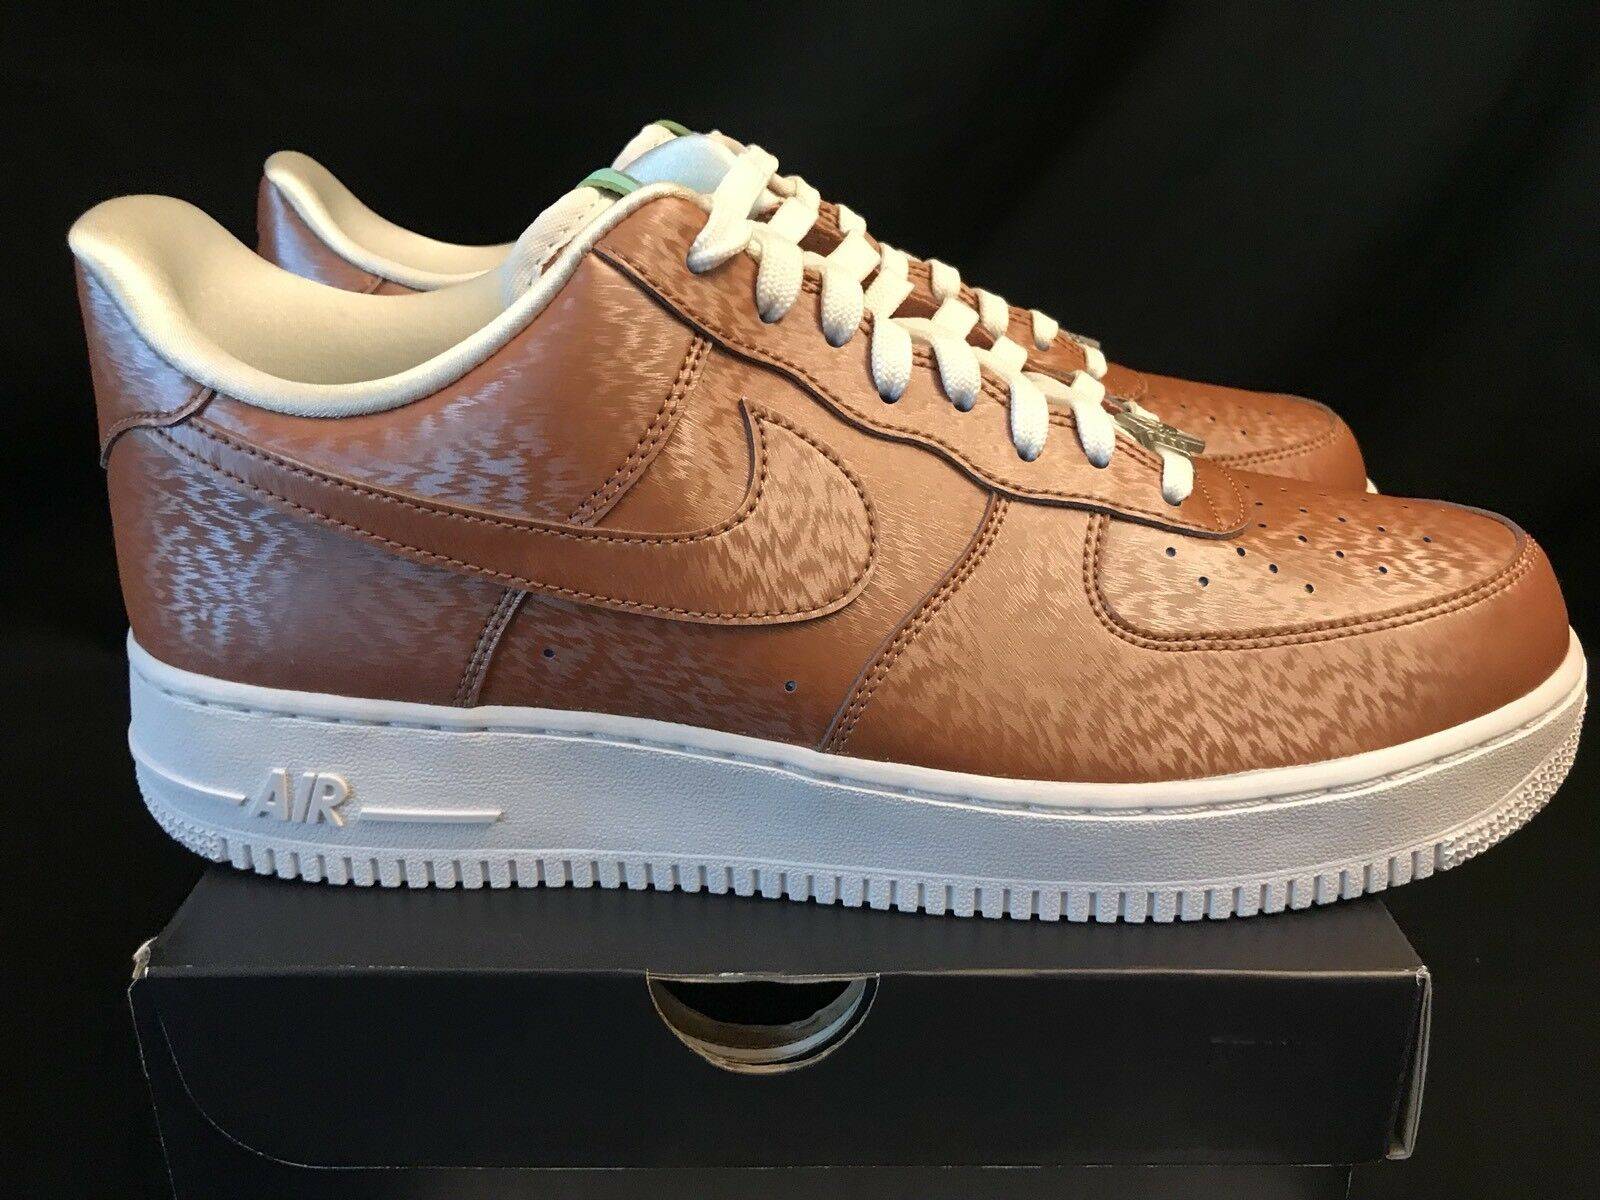 Nike Lab Air Force 1 One AF1 Low NYC Lady Liberty LV8 07' QS 812297 800 11.5 The most popular shoes for men and women